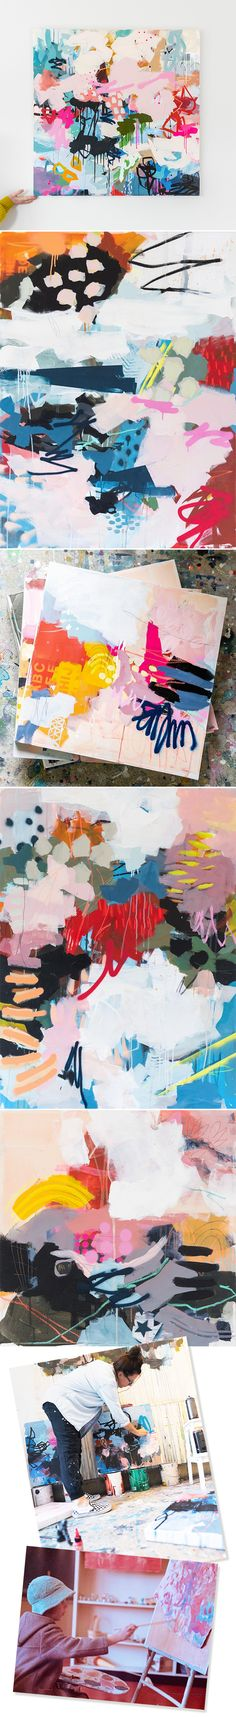 The Jealous Curator /// curated contemporary art /// andrea soos Canadian Painters, Colorful Abstract Art, Post Impressionism, Online Gallery, Jealous, Contemporary Art, Sculptures, Childhood, Vibrant